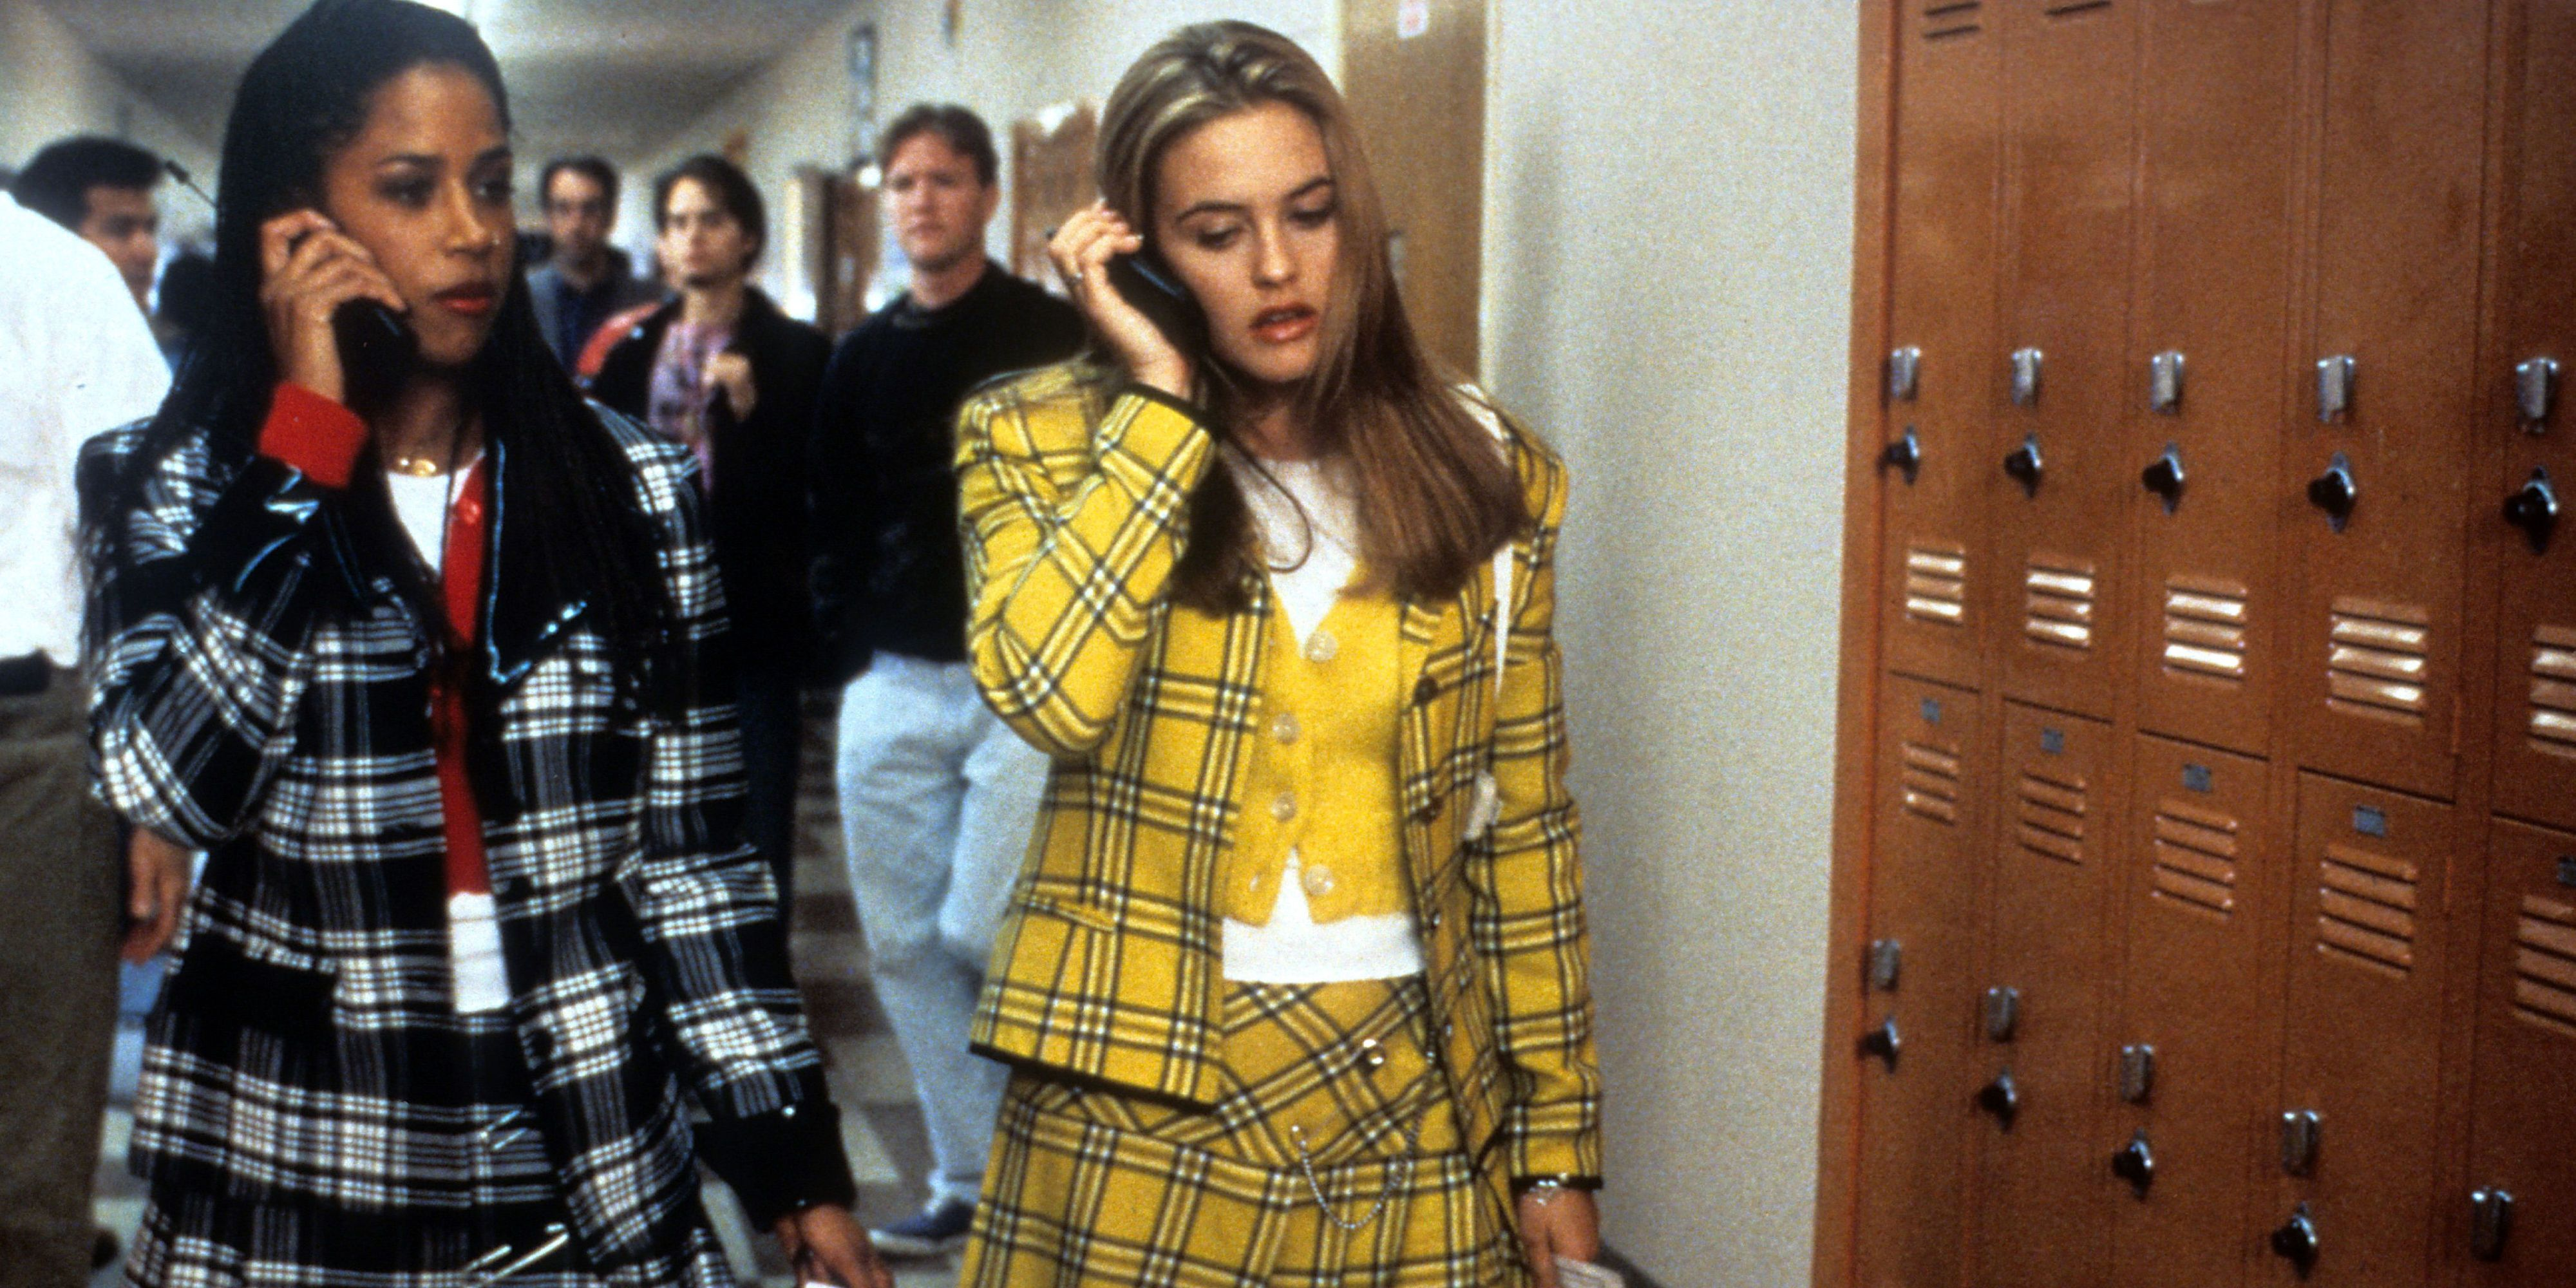 Clueless Halloween costume | ELLE UK  sc 1 st  Elle & The Best Friend Halloween Costumes: The Most Adorably Spooky Outfits